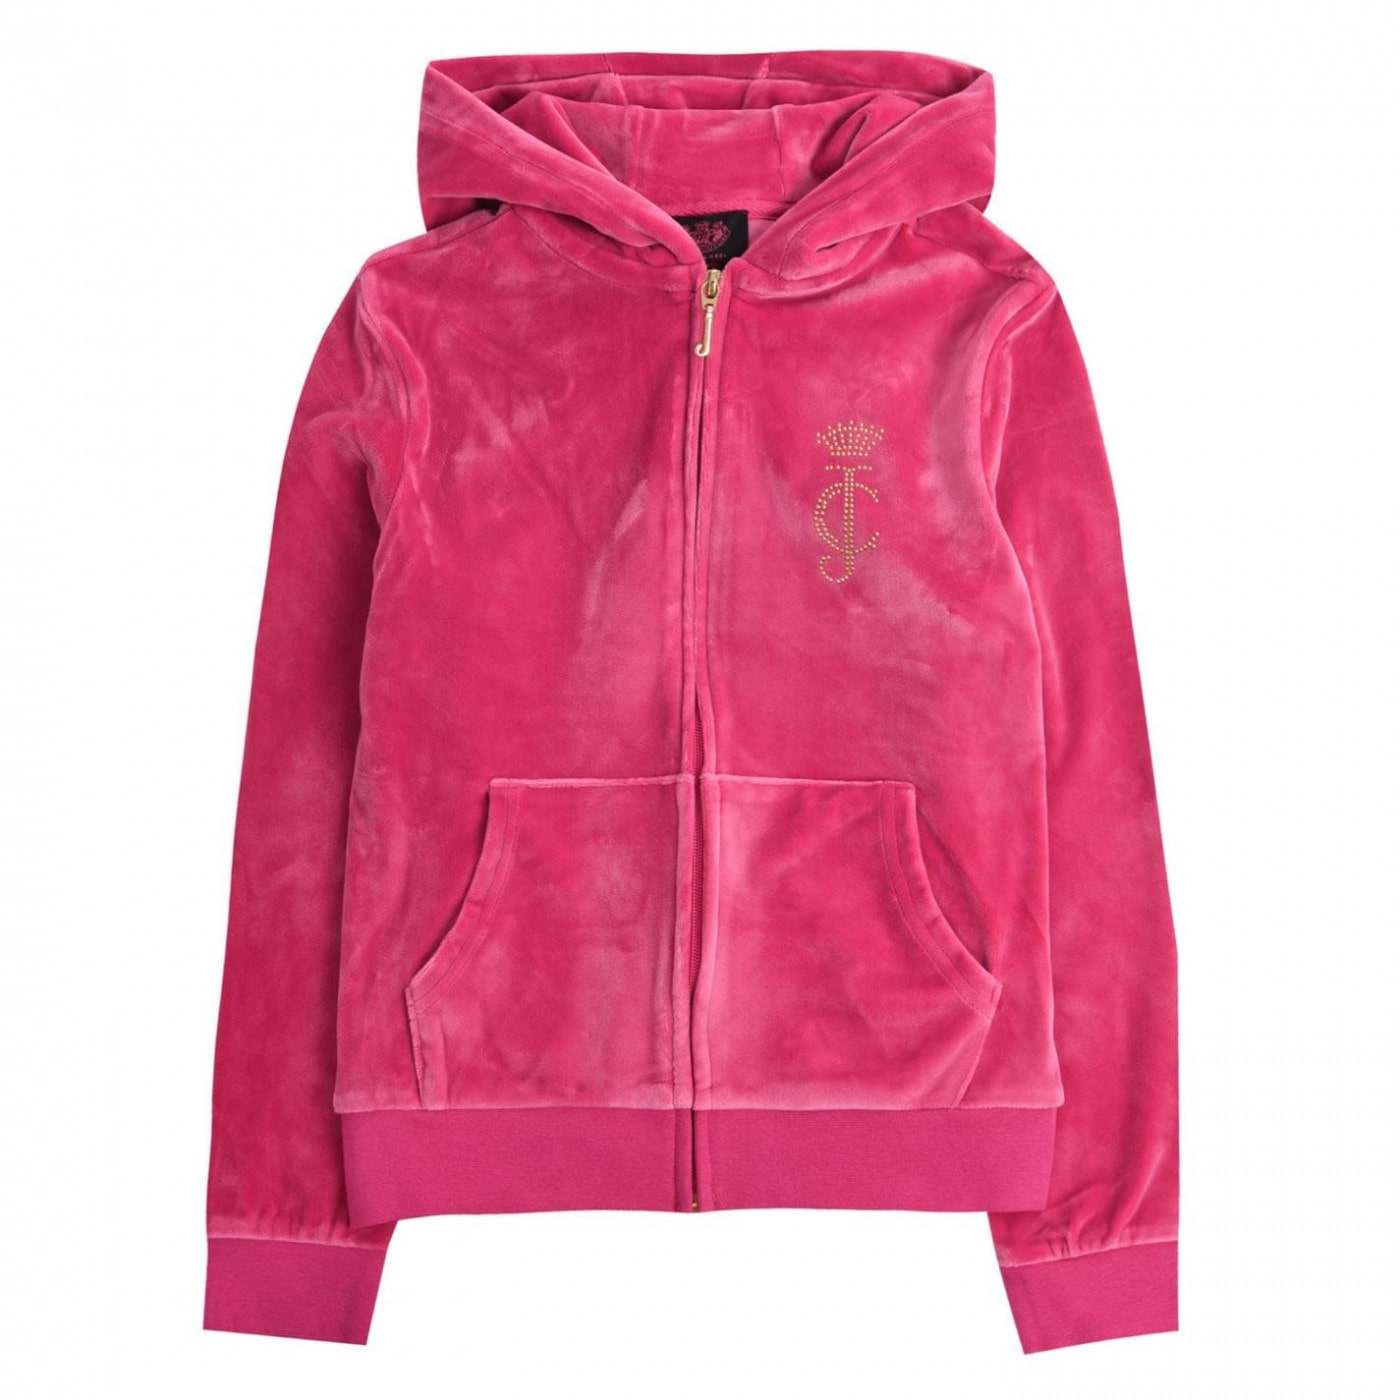 Juicy Couture Zip Through Hoodie